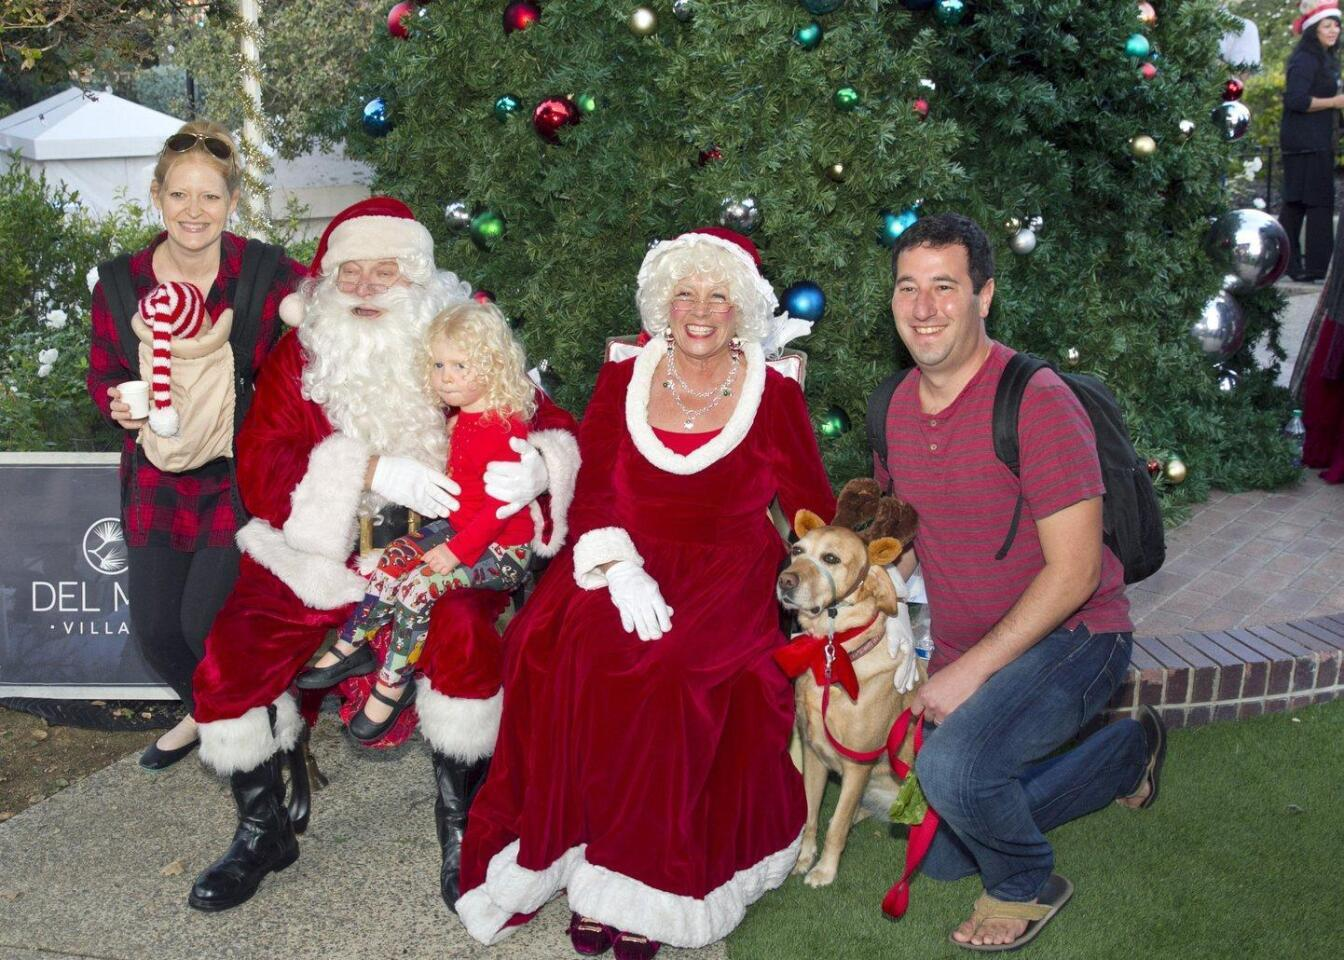 The Levin family with Santa and Mrs. Claus